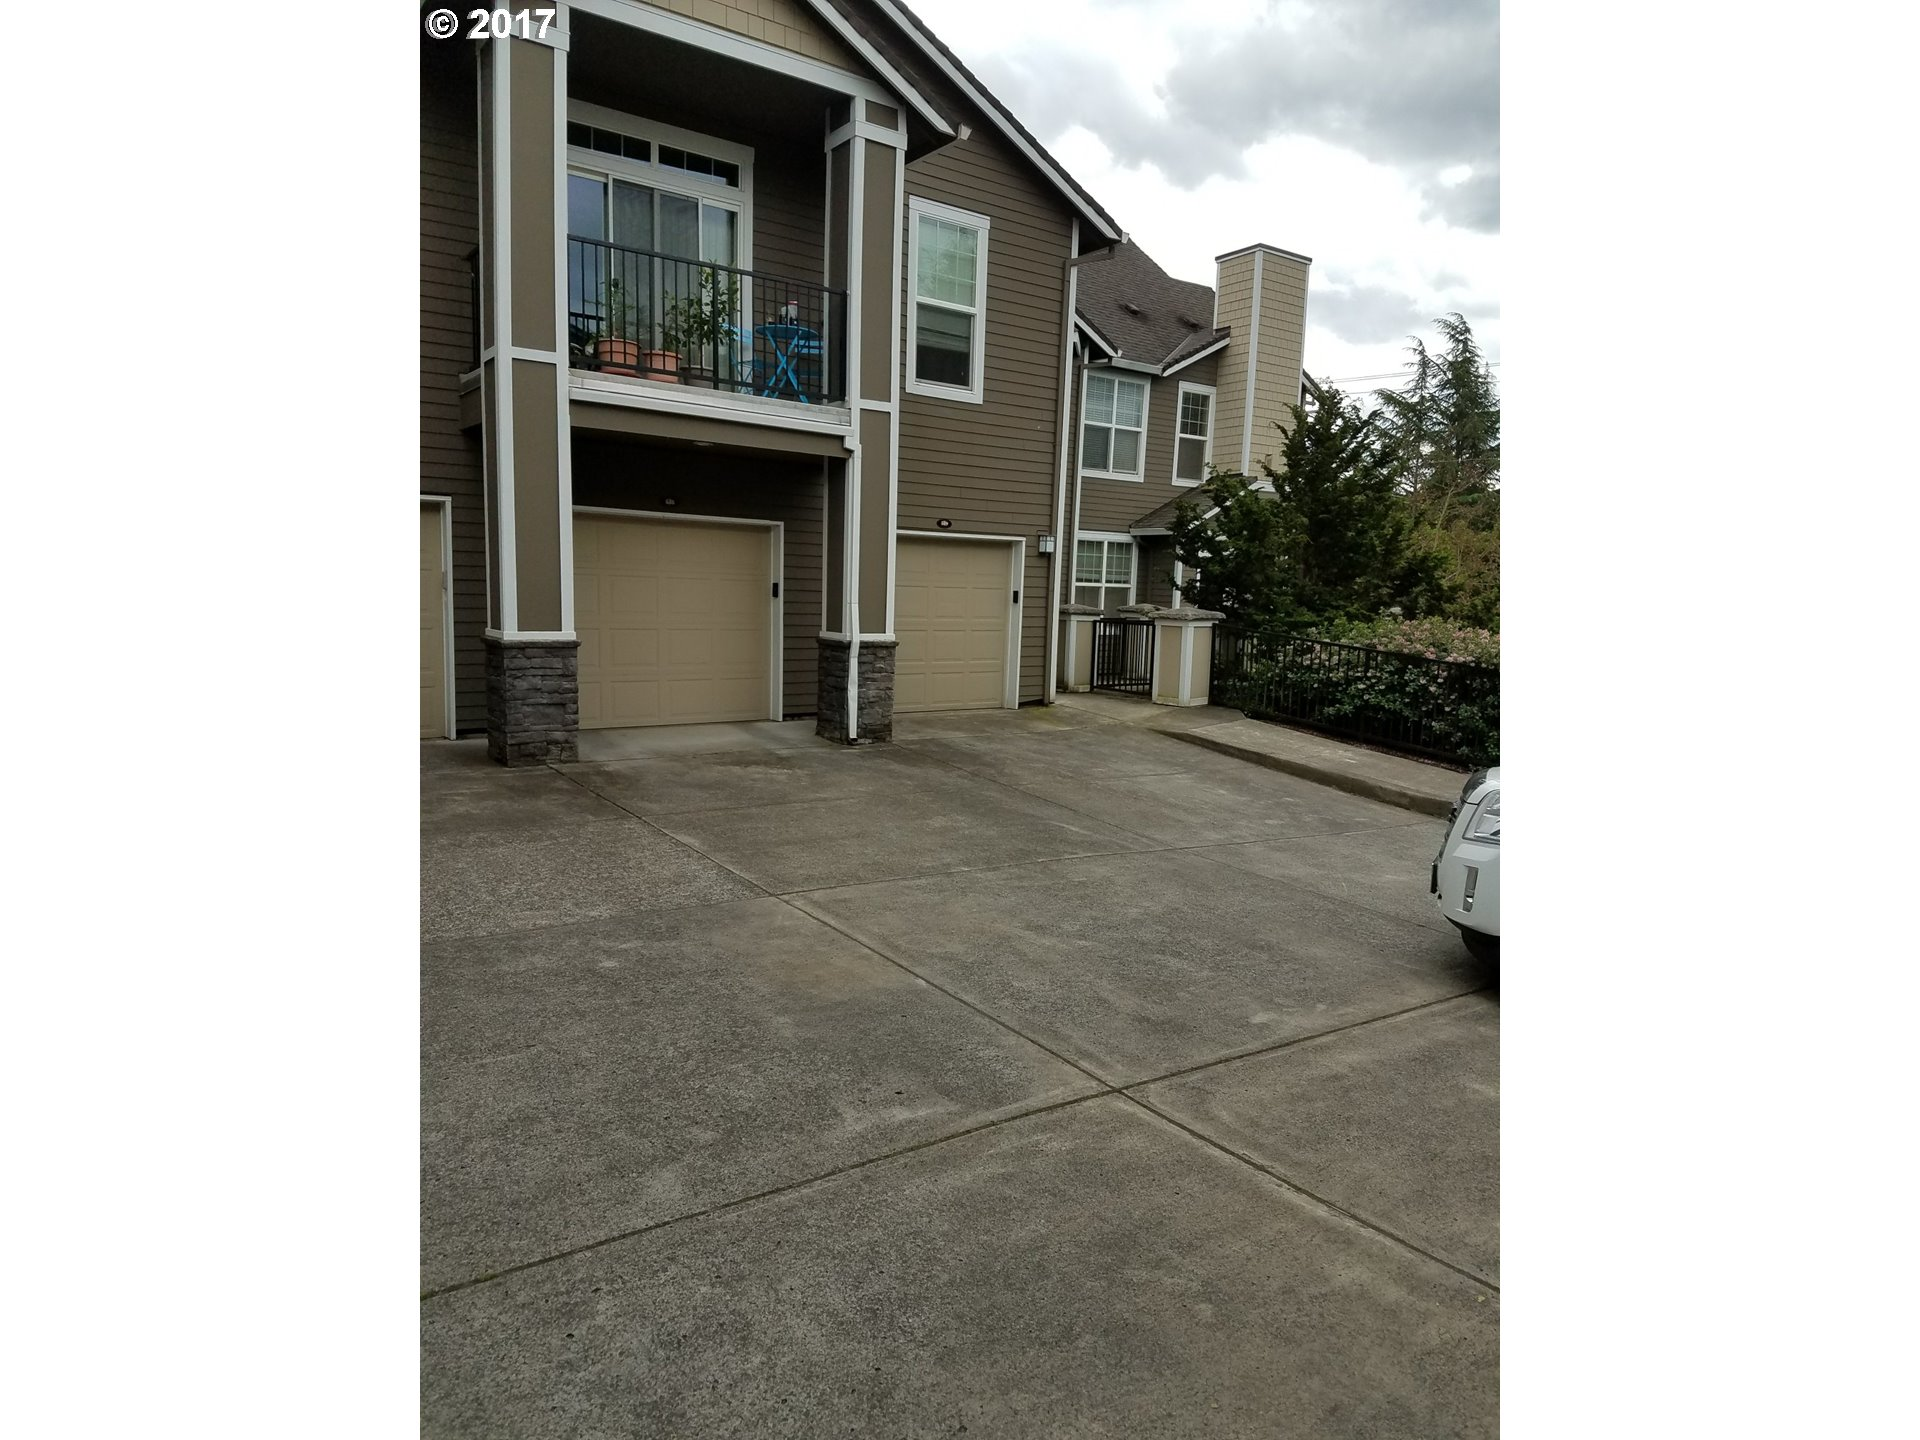 509 SPRINGTREE LN, West Linn, OR 97068